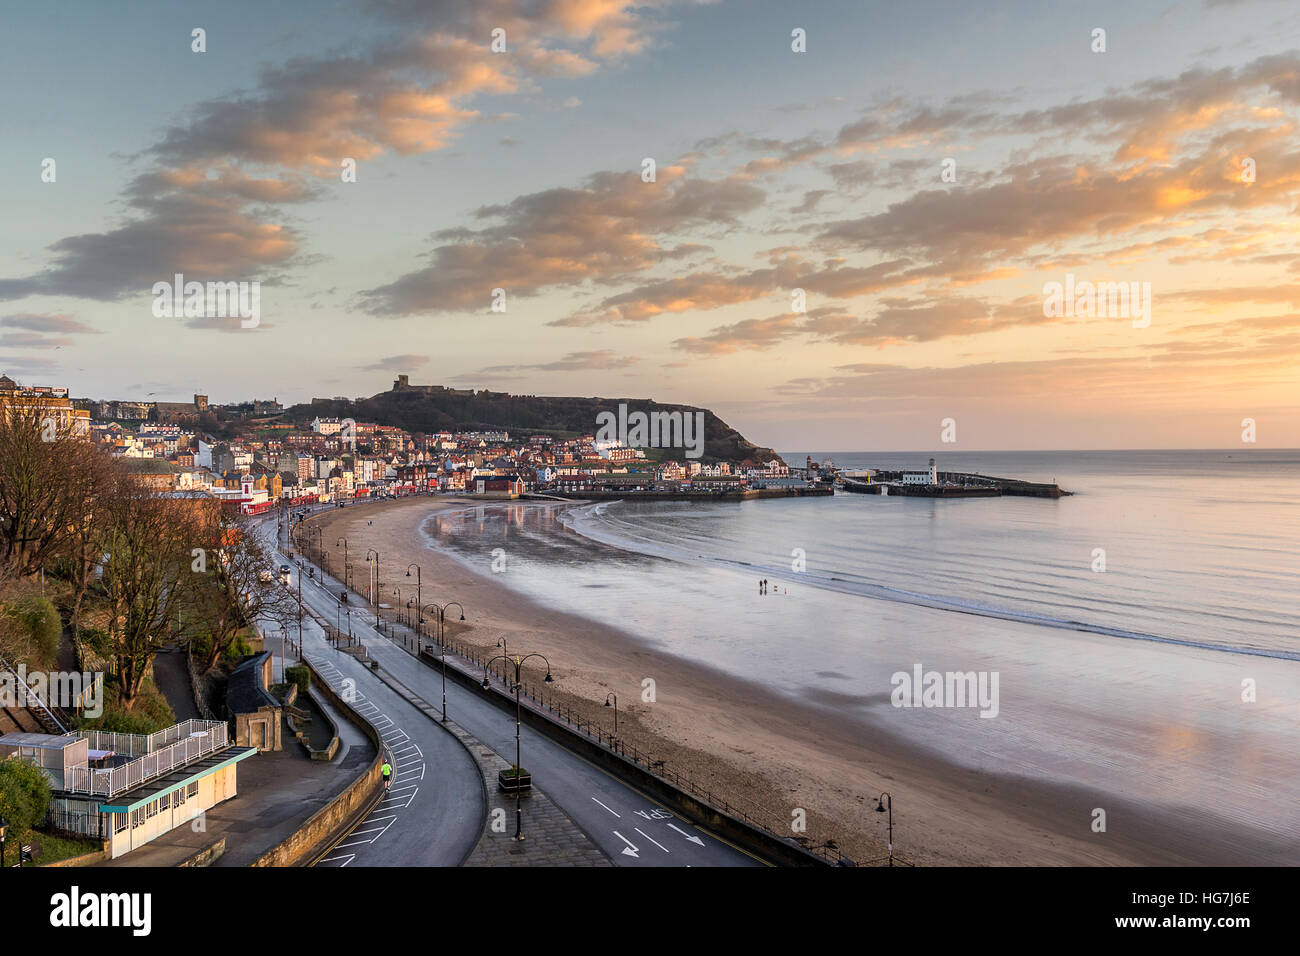 Scarborough beach in Yorkshire - Stock Image